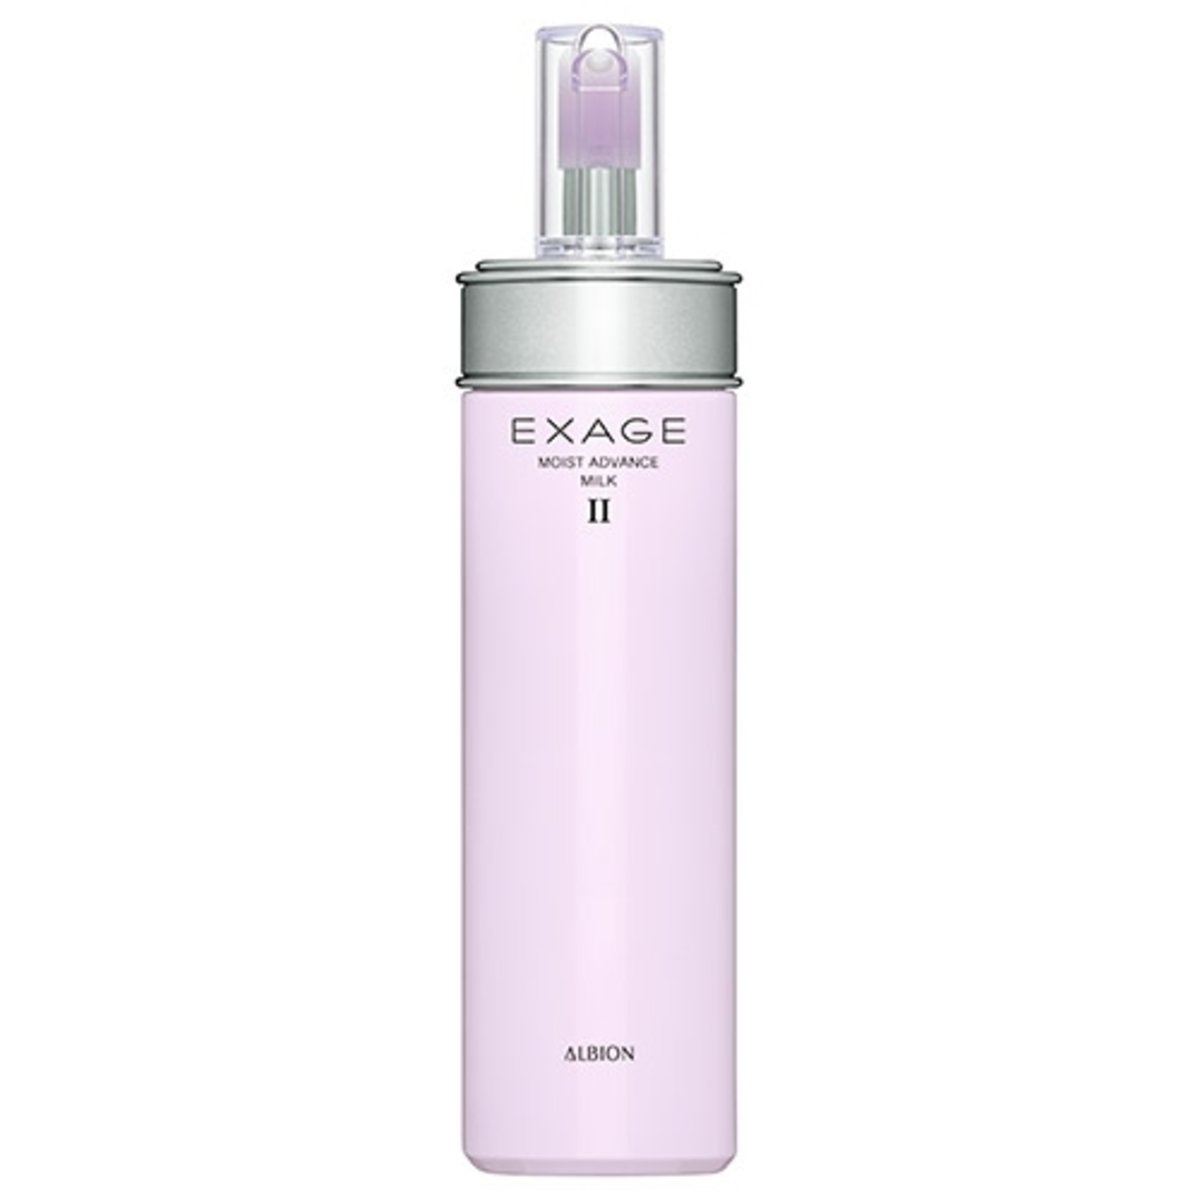 EXAGE Moist Advance Milk II 200g (pink)(Parallel Imports Product)